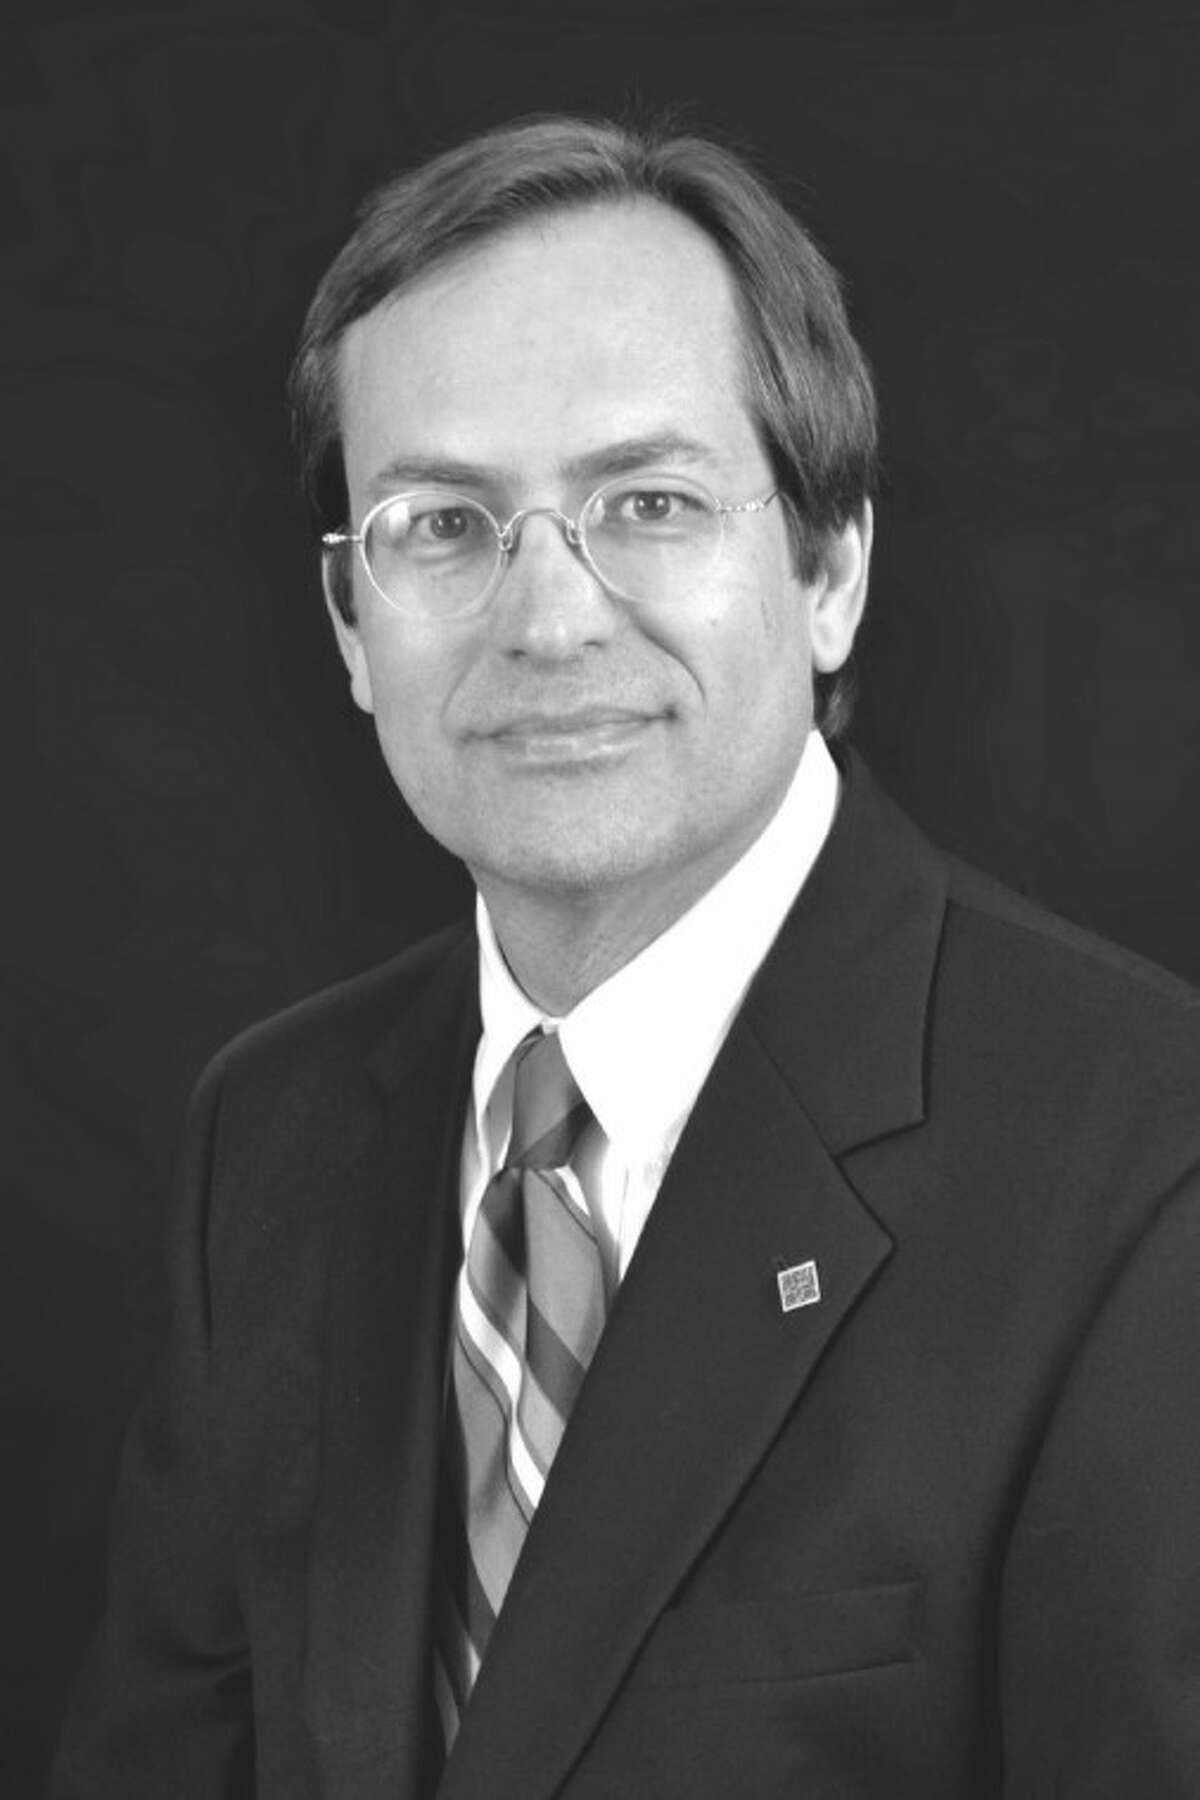 Keith A. Bourgeois, M.D., an ophthalmologist in private practice, will be installed as the 111th president of Harris County Medical Society. (Photo submitted)